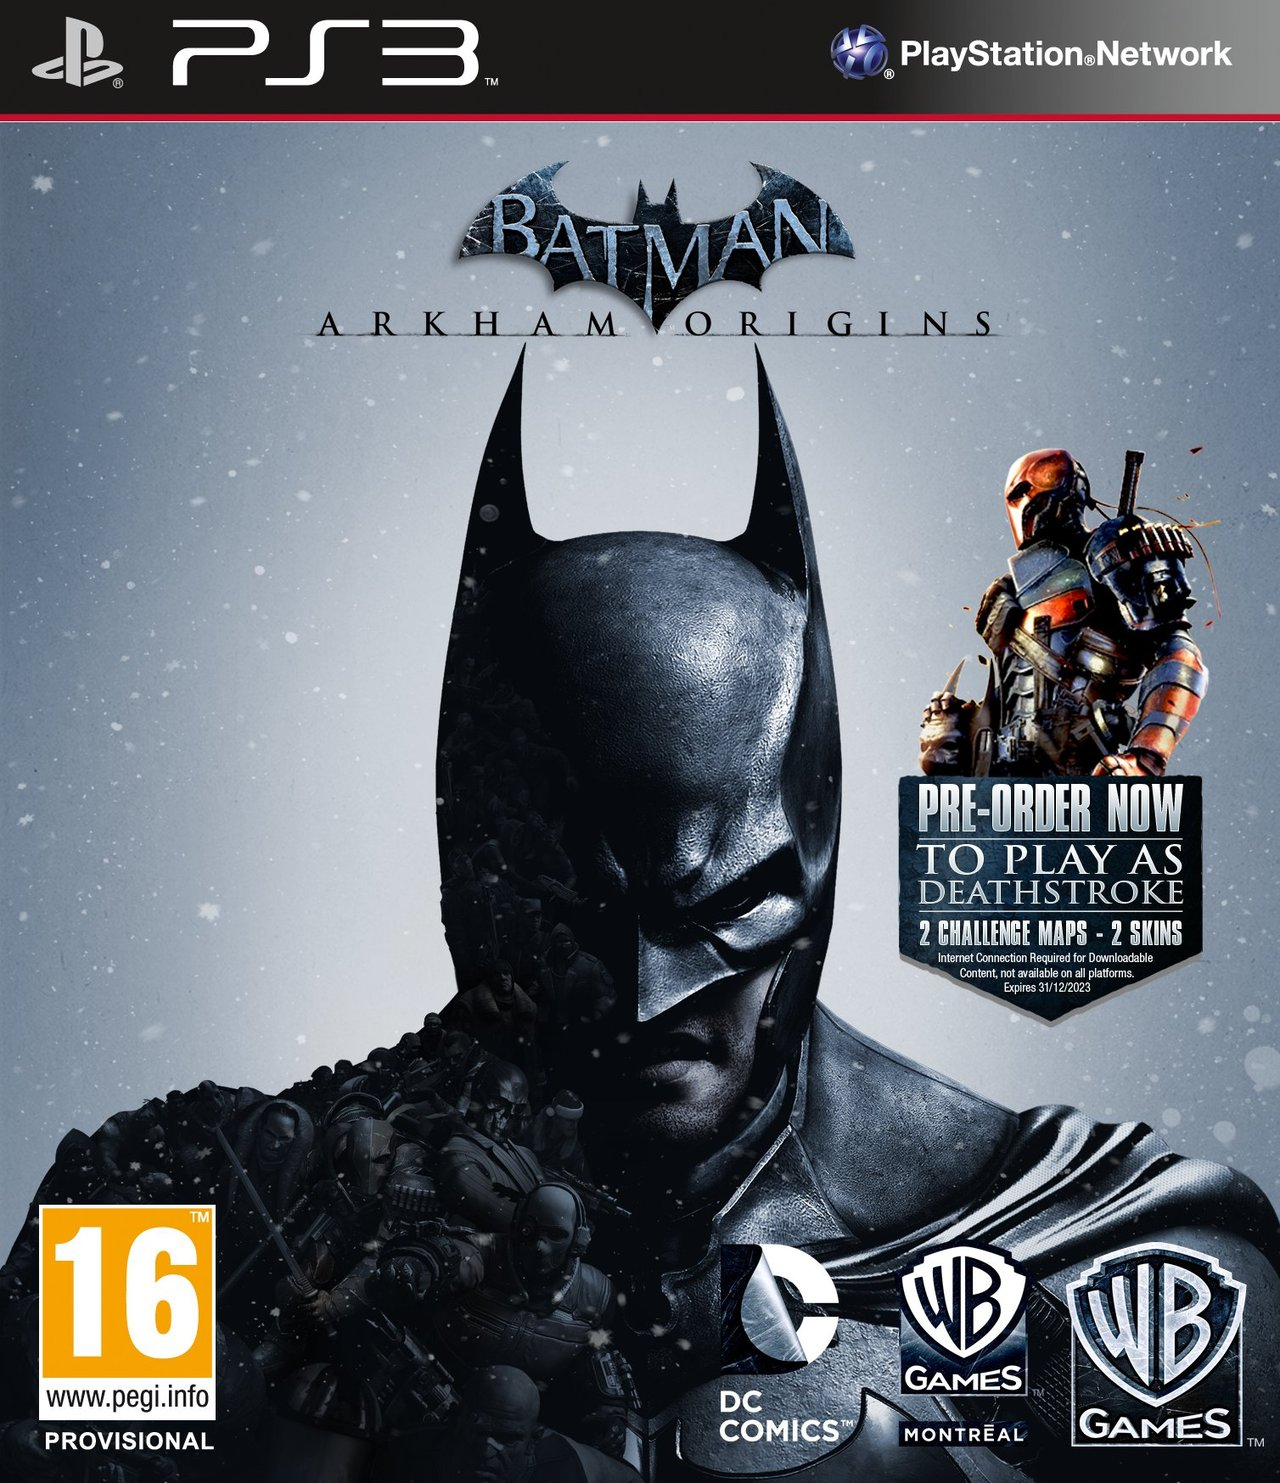 [PS3] CHEATPKG Prêts à l'emploi Jaquette-batman-arkham-origins-playstation-3-ps3-cover-avant-g-1369058247